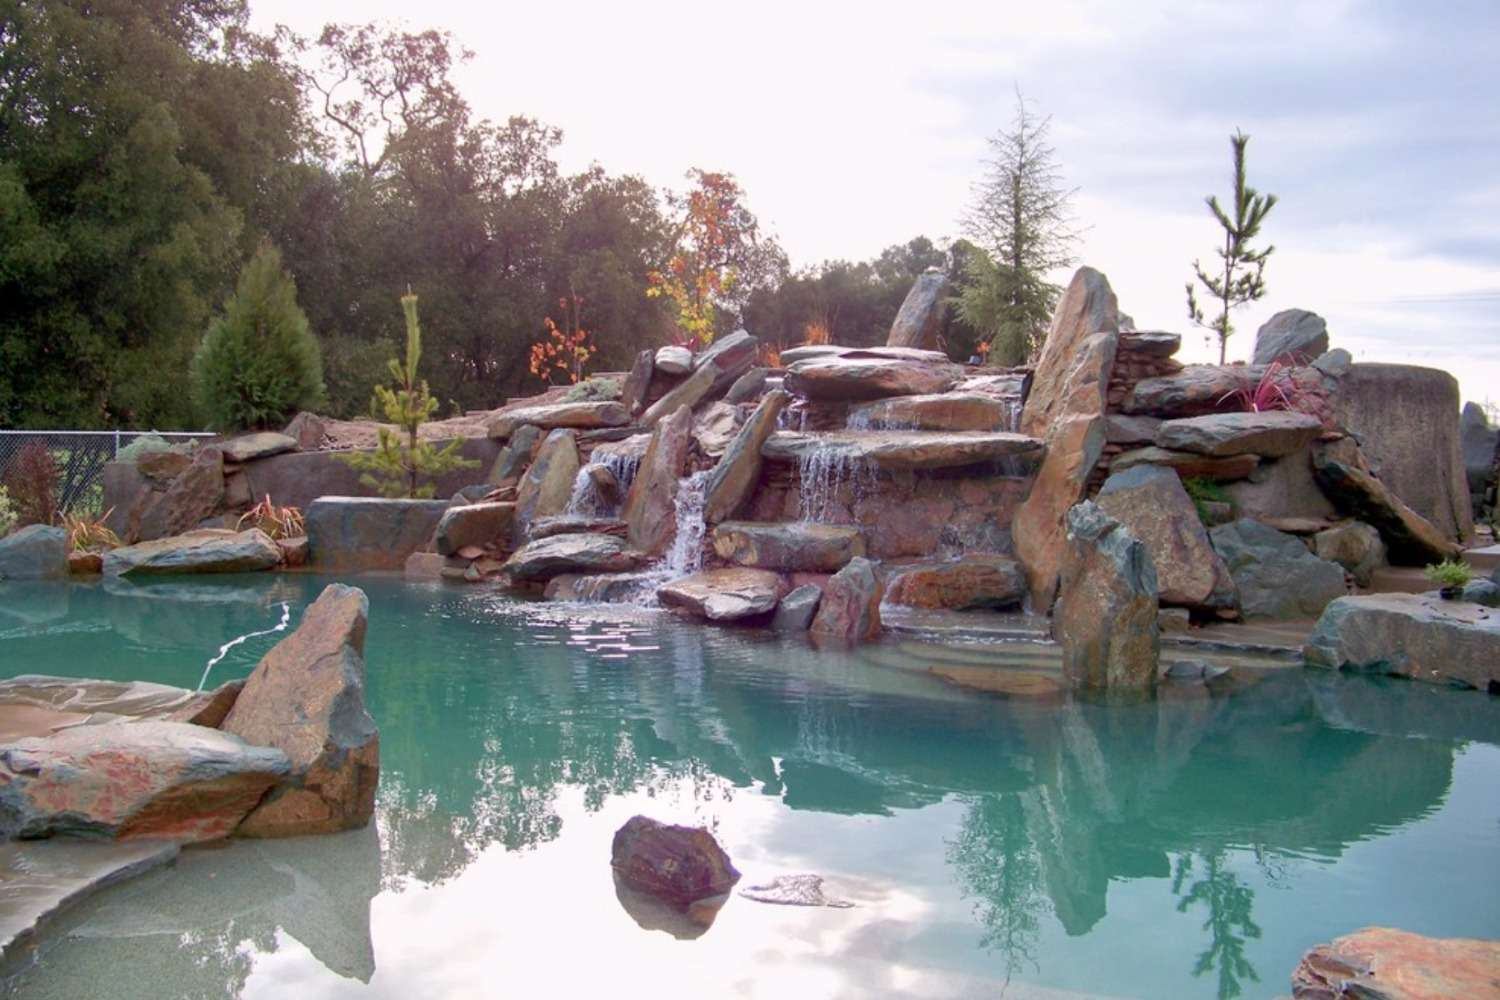 Pool with boulders